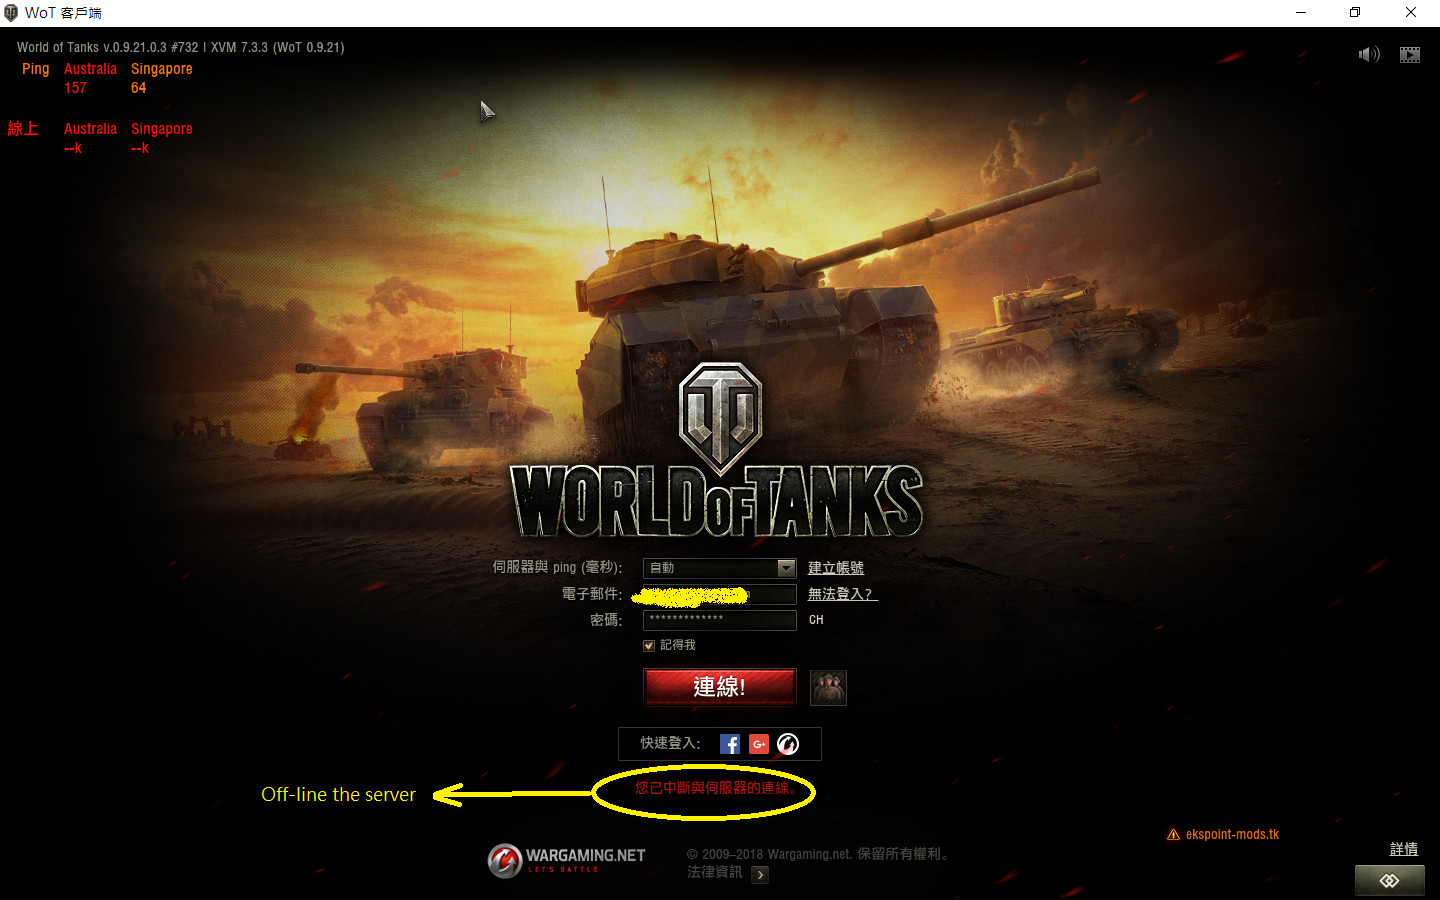 From 9 21 01 could not login to server with mod pack